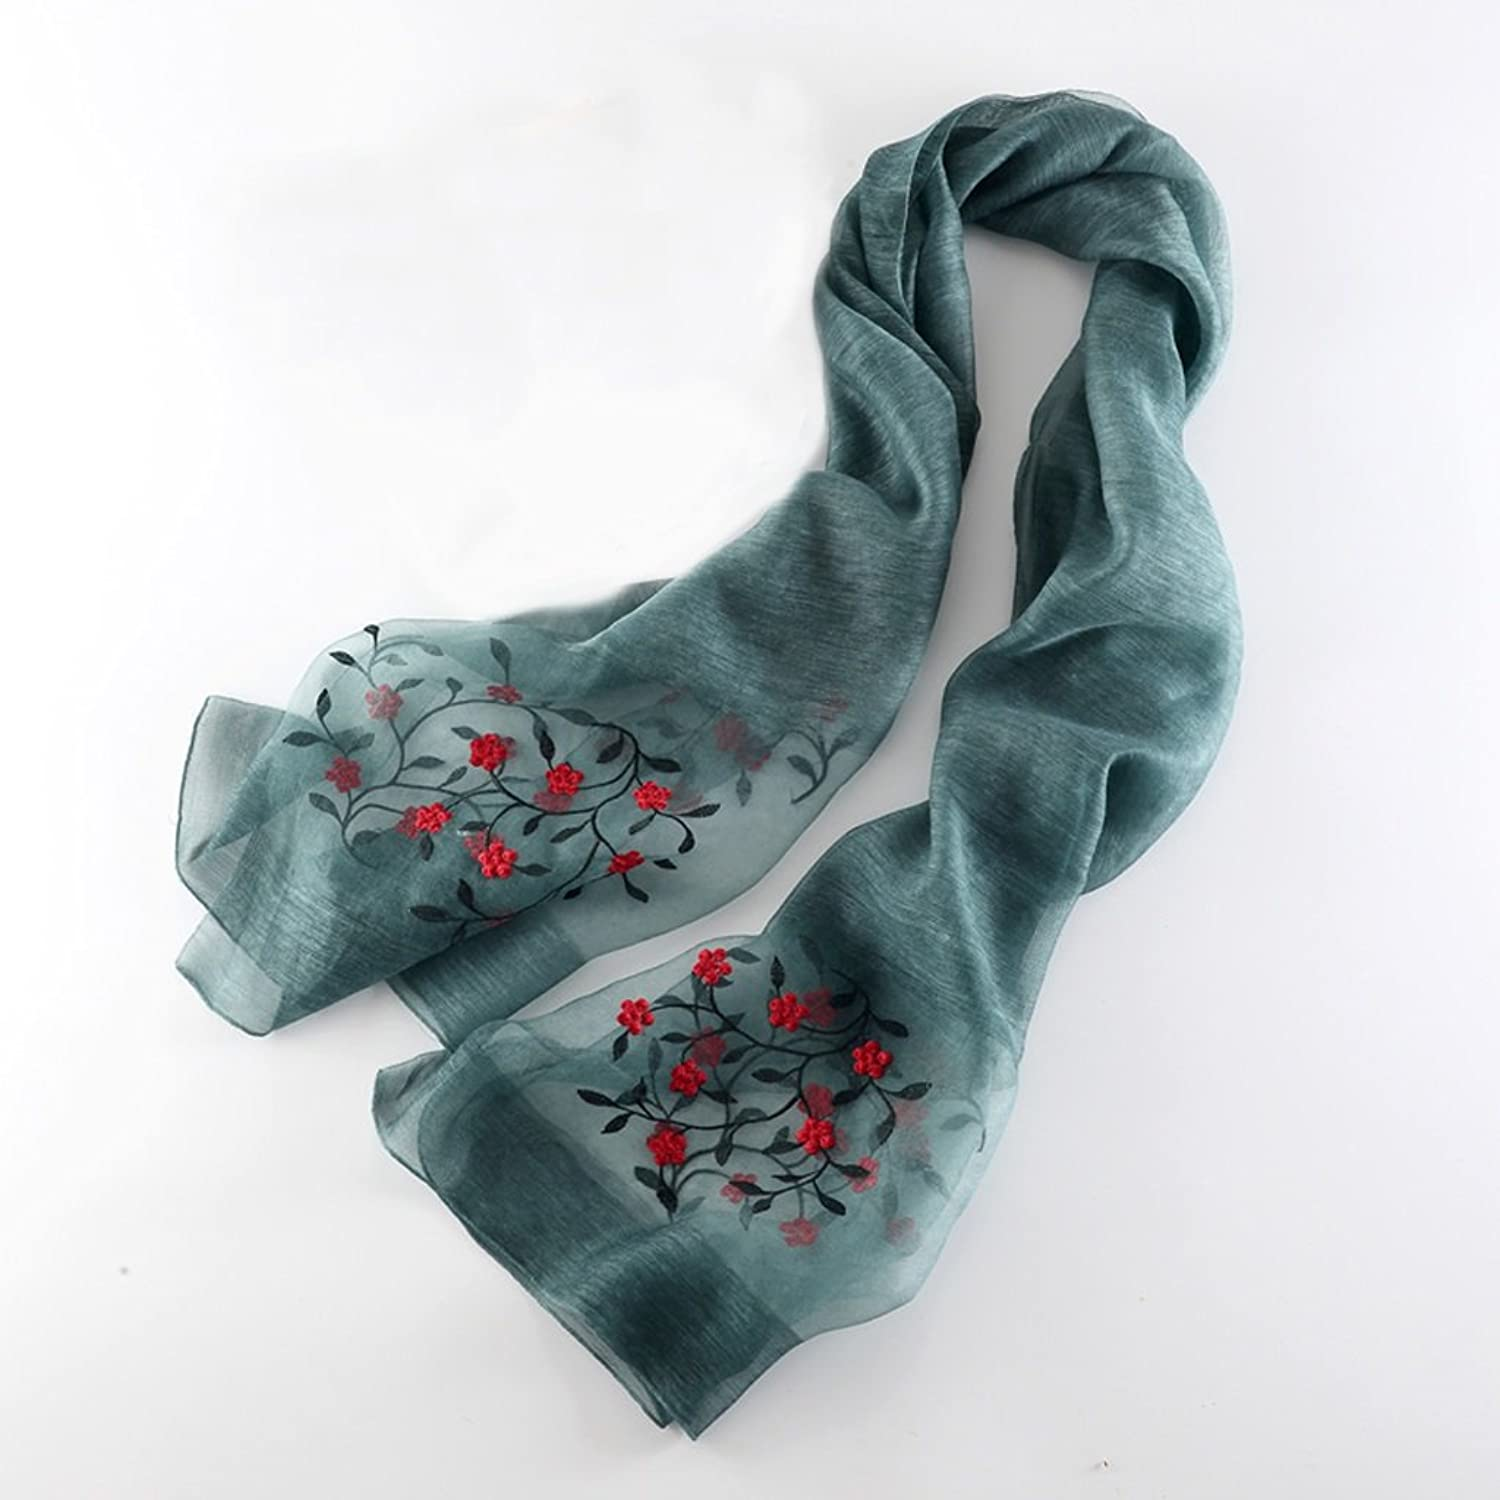 LBY Silk Wool Scarf, Silk Embroidered Embroidered Shawl, Solid color, Warm Winter Scarf Scarf (color   C)